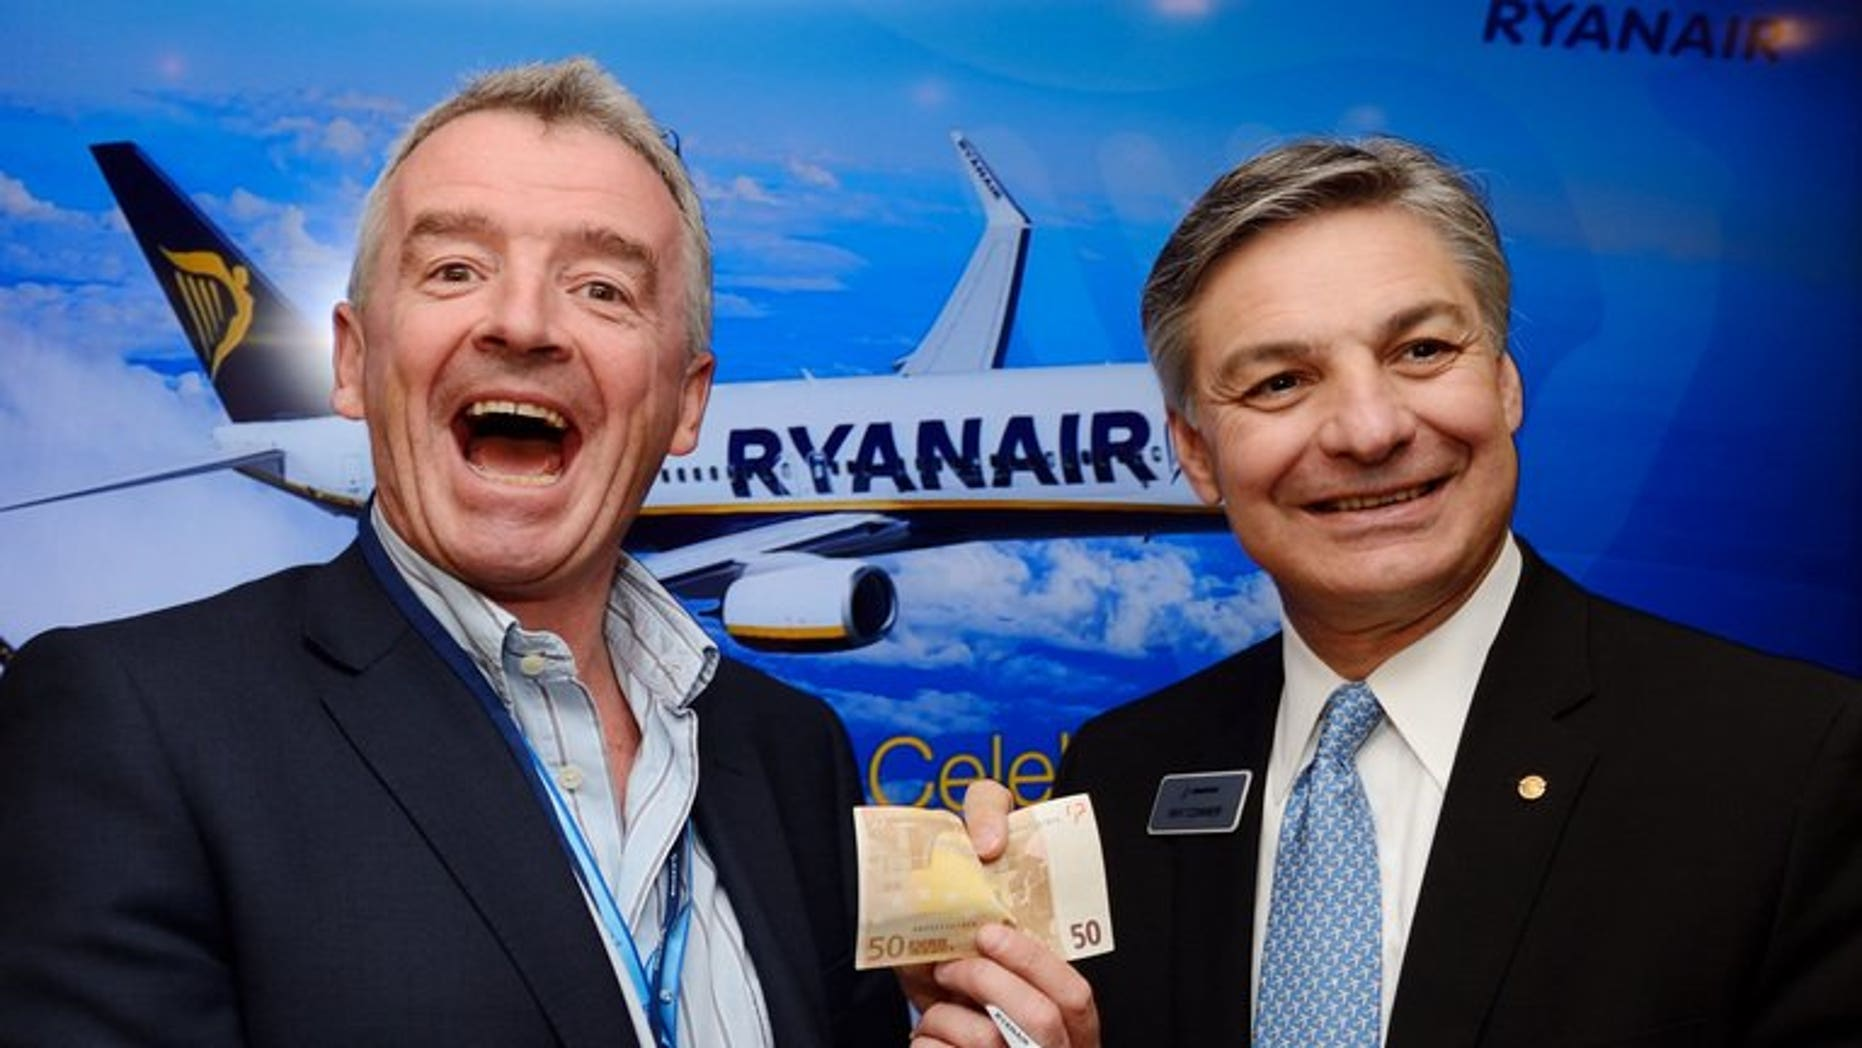 Ryanair chief executive officer Michael O'Leahry (left) and Boeing Airplane President Ray Conner on June 19, 2013 at Le Bourget airport, Paris. Ryanair has fired a pilot who contributed to a British television documentary that raised fears over its fuel policy, the Irish no-frills airline has announced.